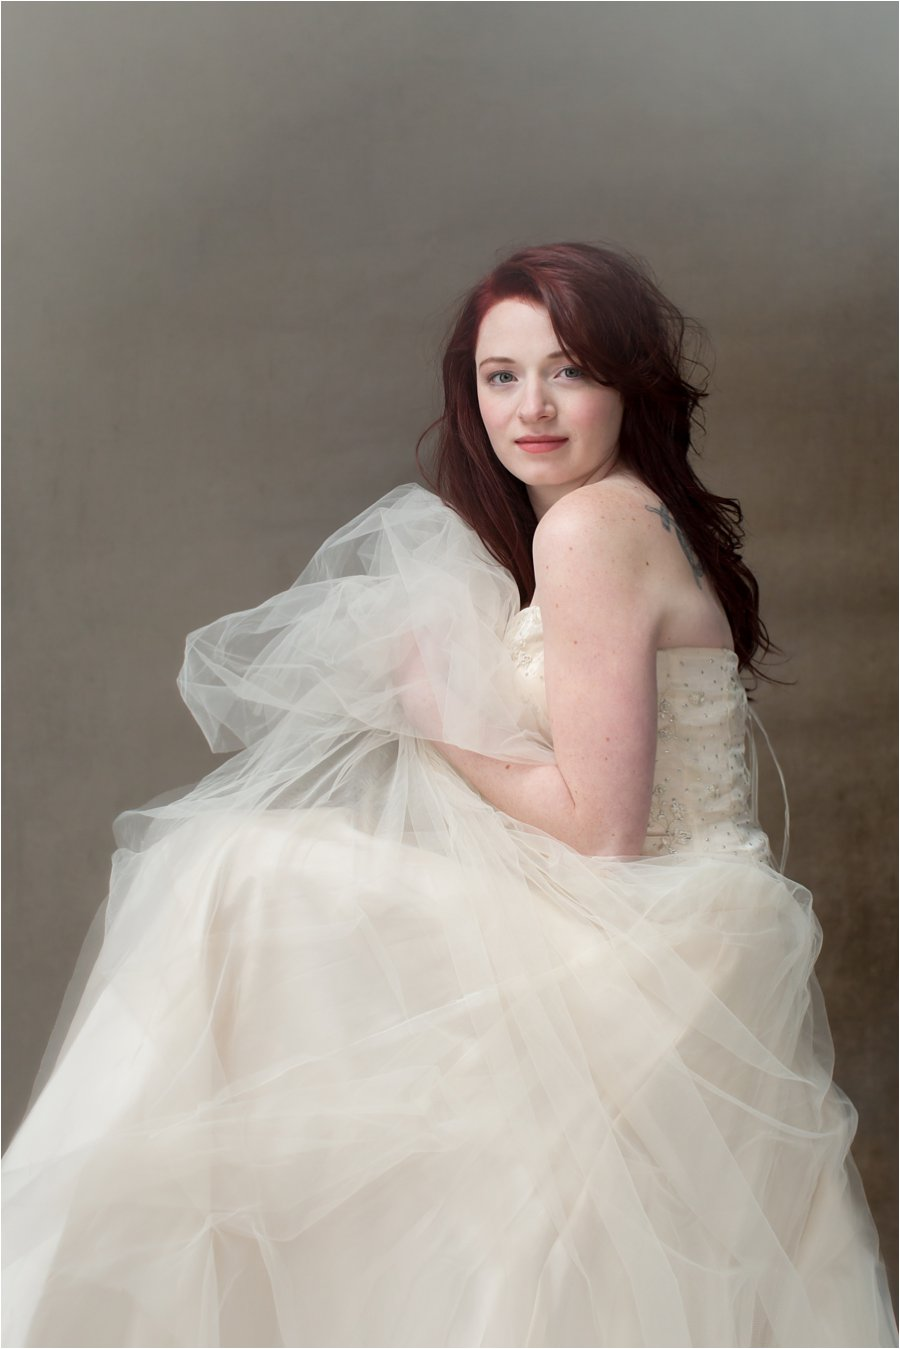 Portrait in Tulle Gown © 2015 Maundy Mitchell_0003.jpg